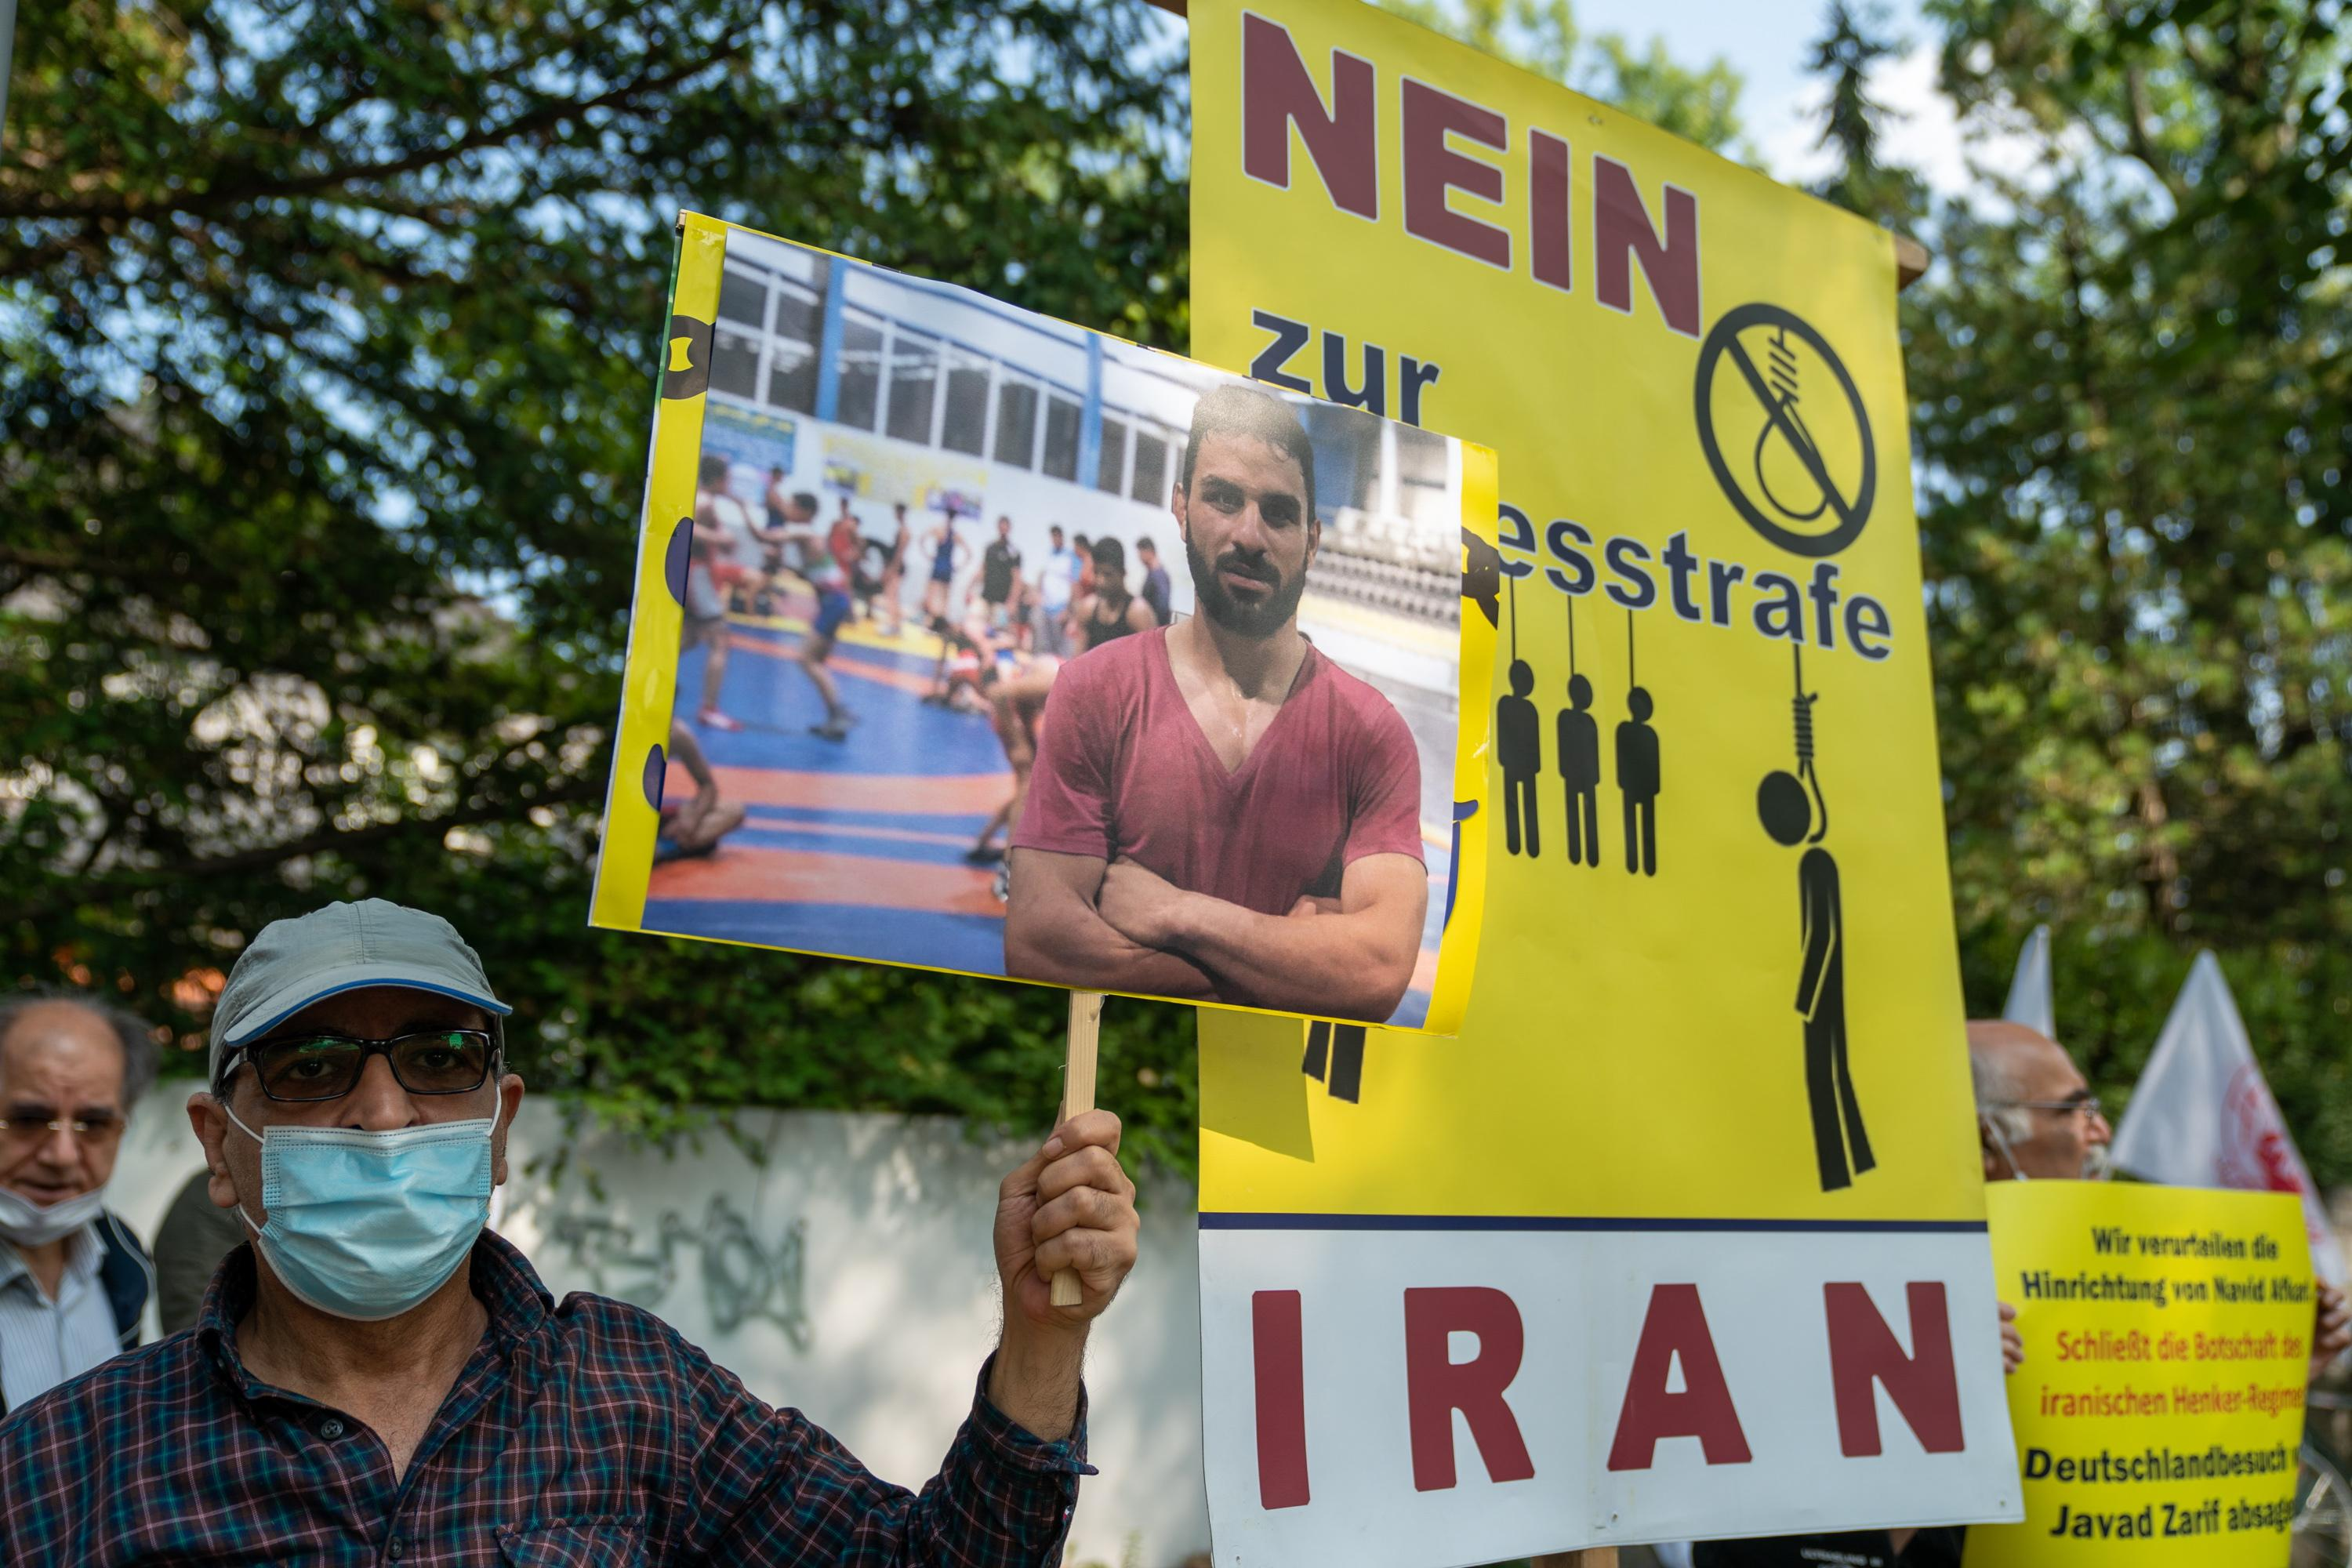 Protest in Berlin against execution of Iranian wrestler Navid Afkari